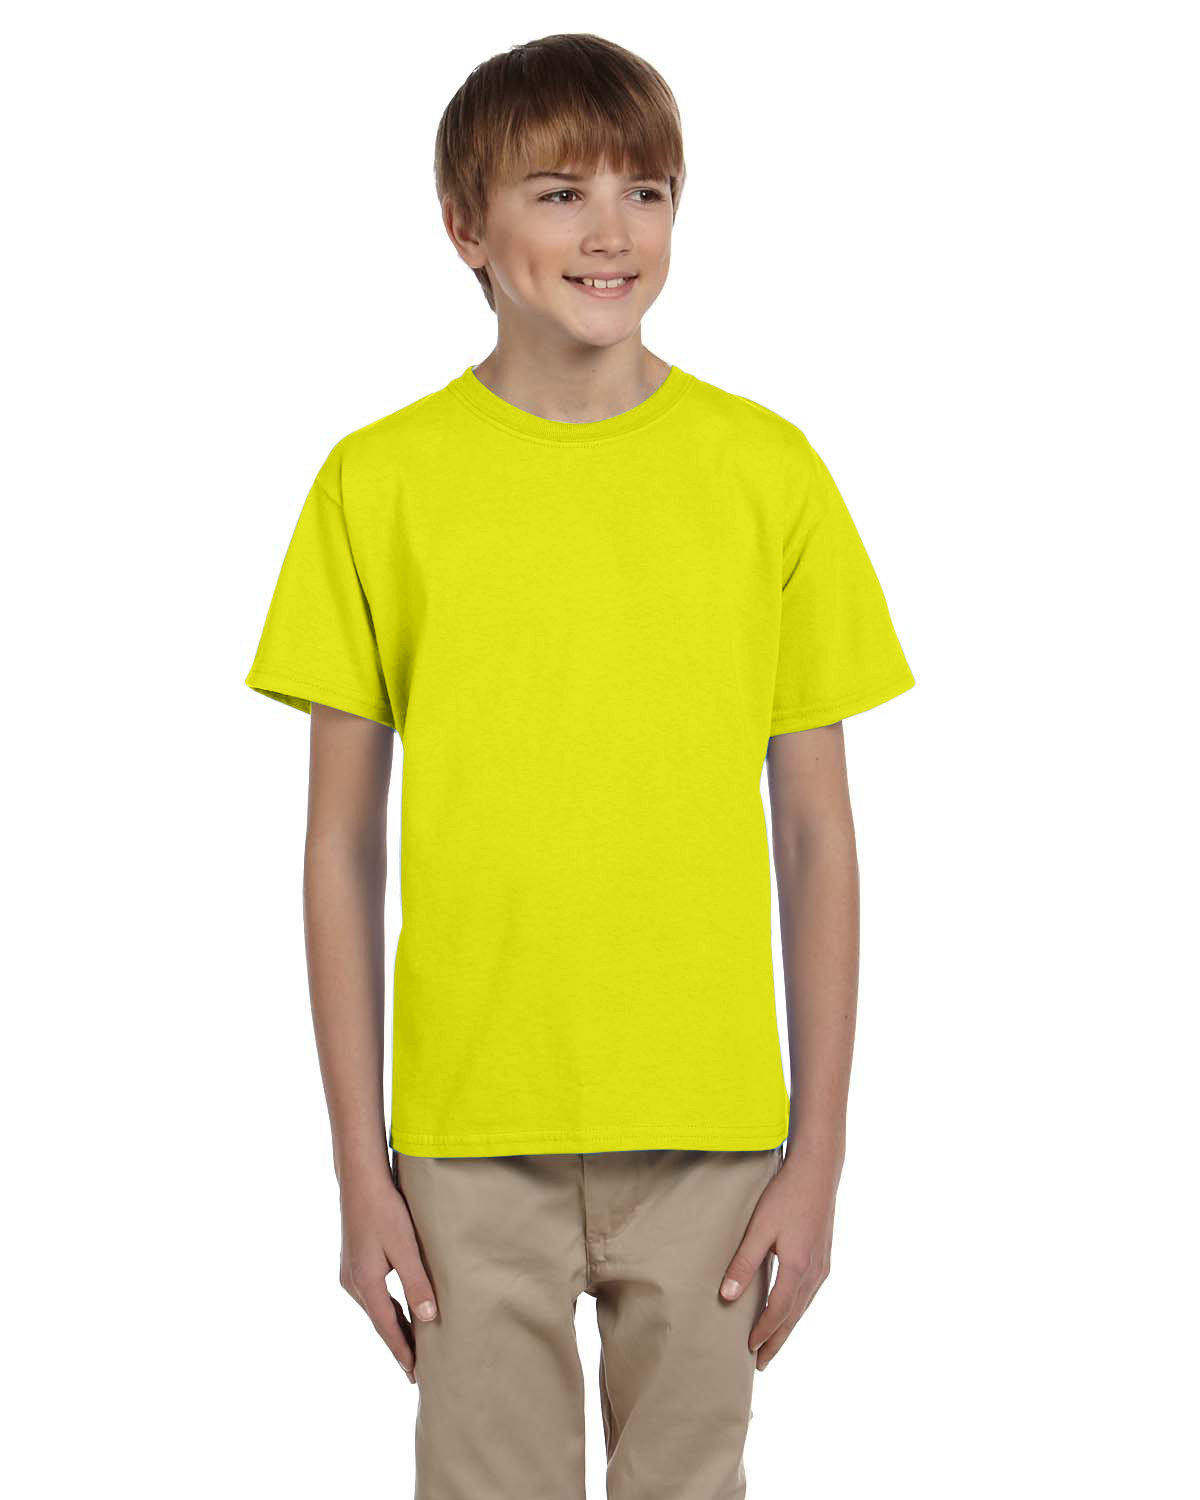 Hanes Youth 50/50 T-Shirt SAFETY GREEN